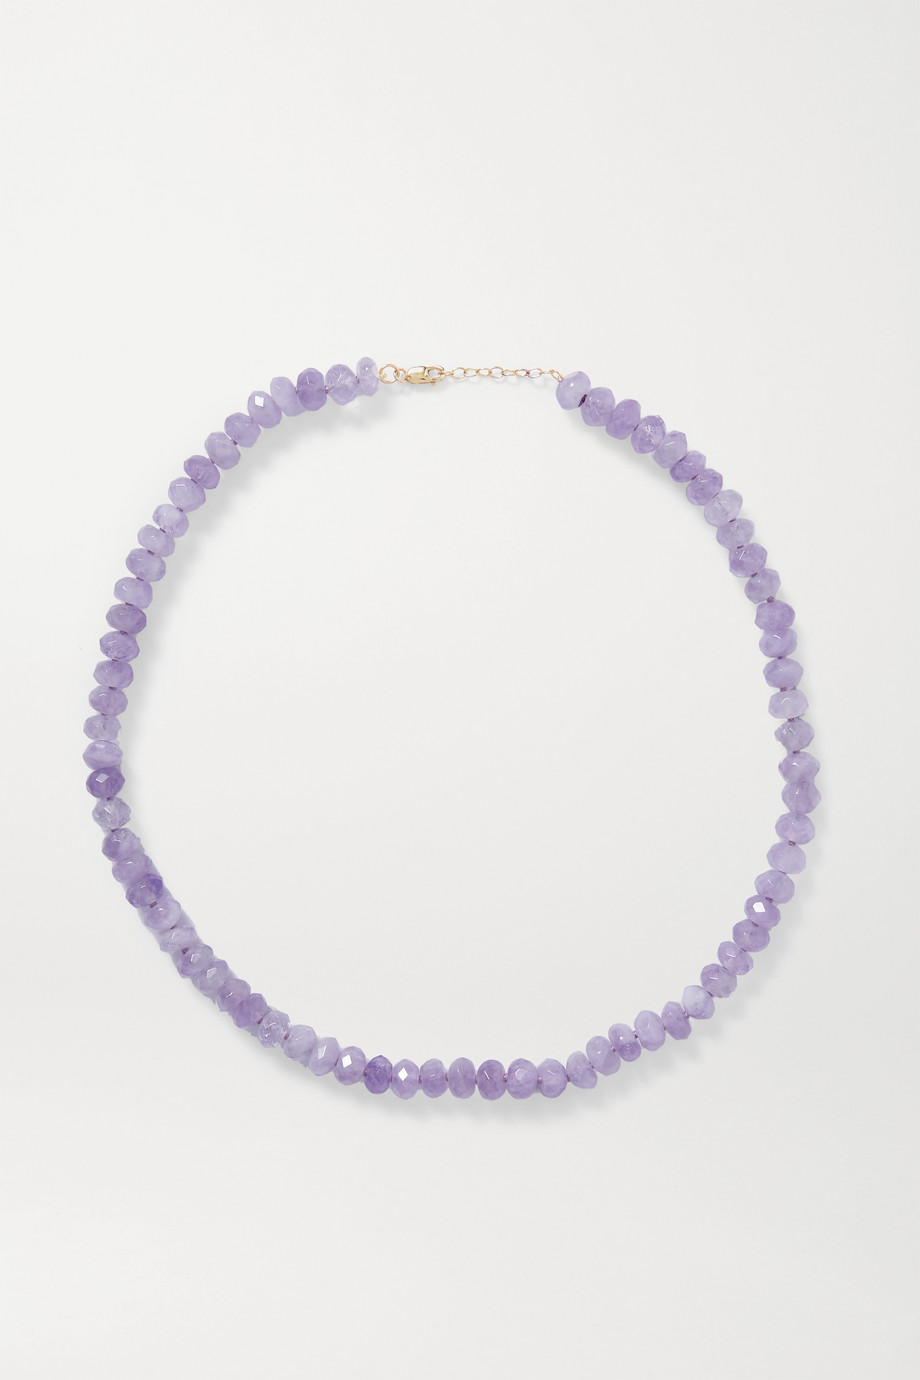 JIA JIA Gold amethyst necklace